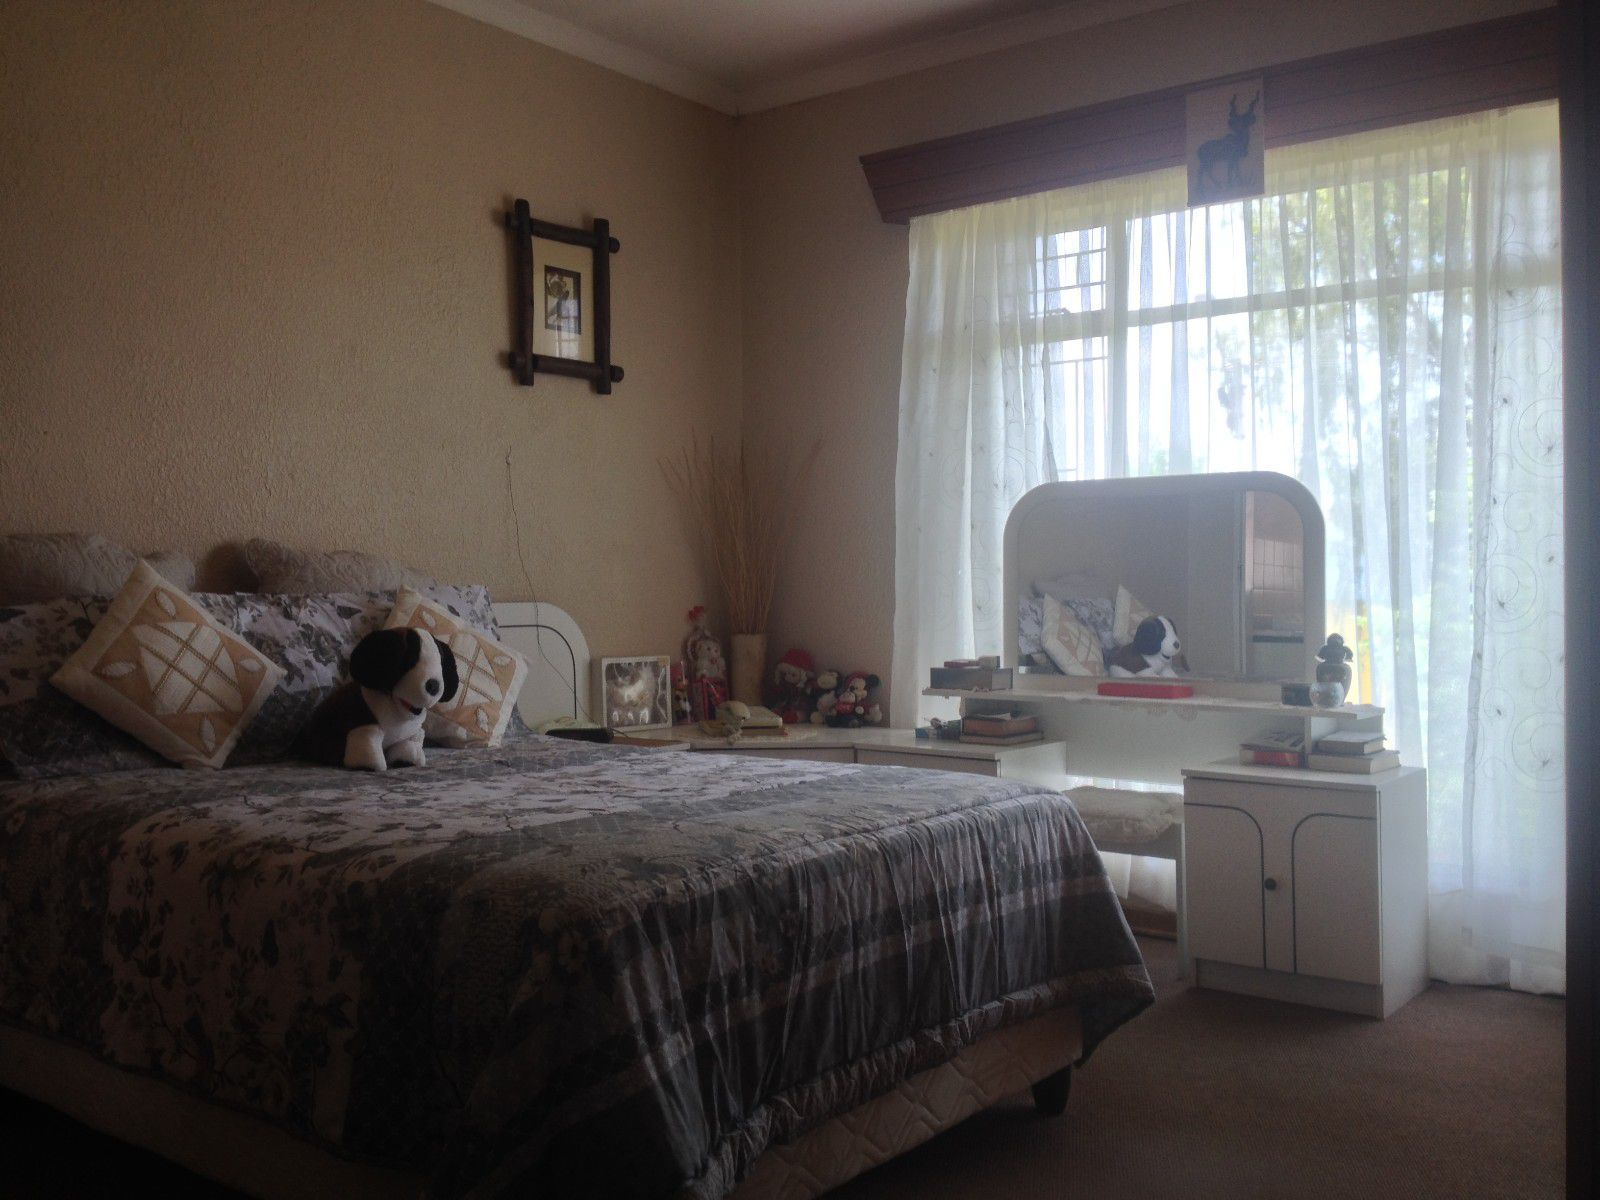 Potchefstroom Central property for sale. Ref No: 13411530. Picture no 16